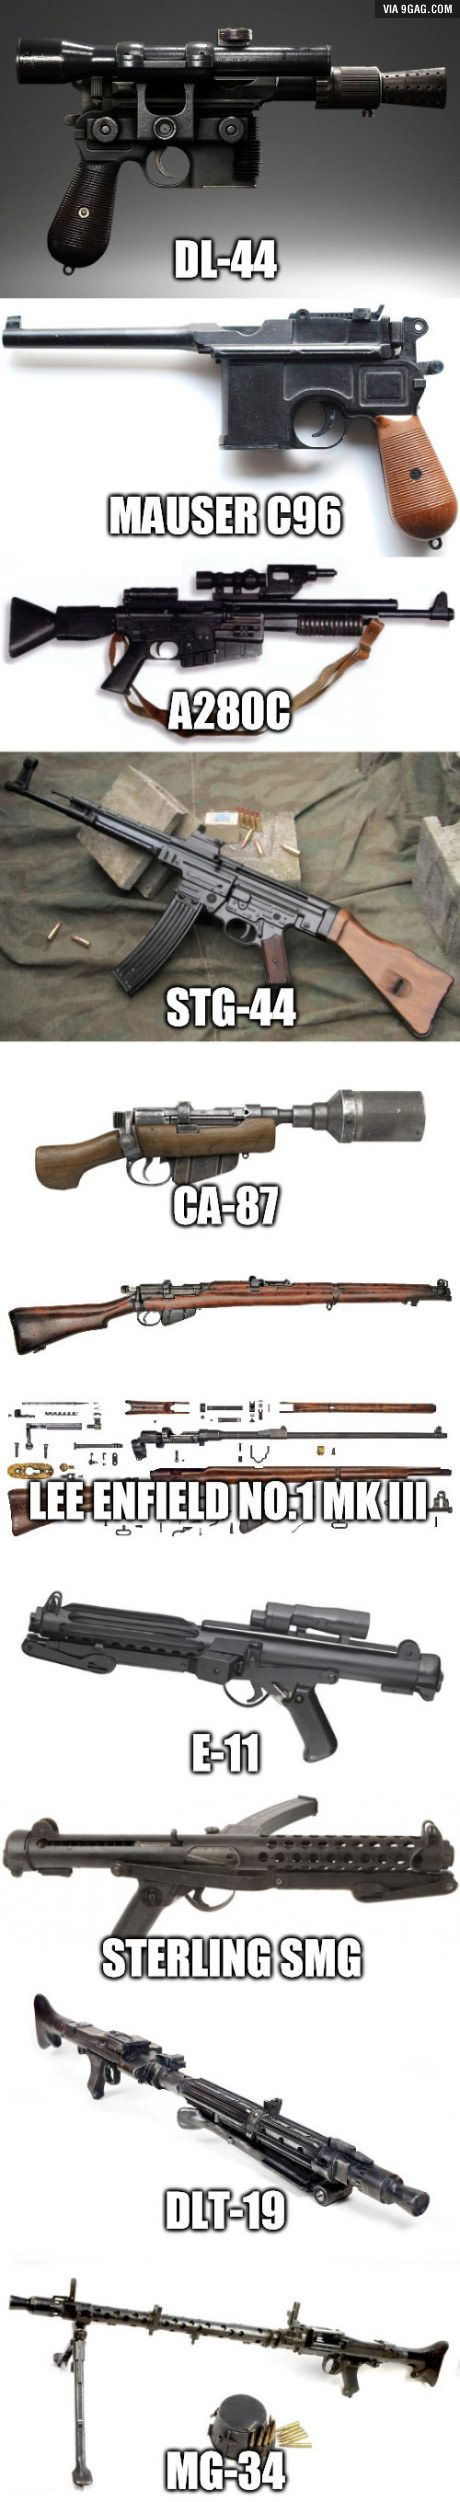 Weapons from Star Wars (above), and real weapons they are based on (below)